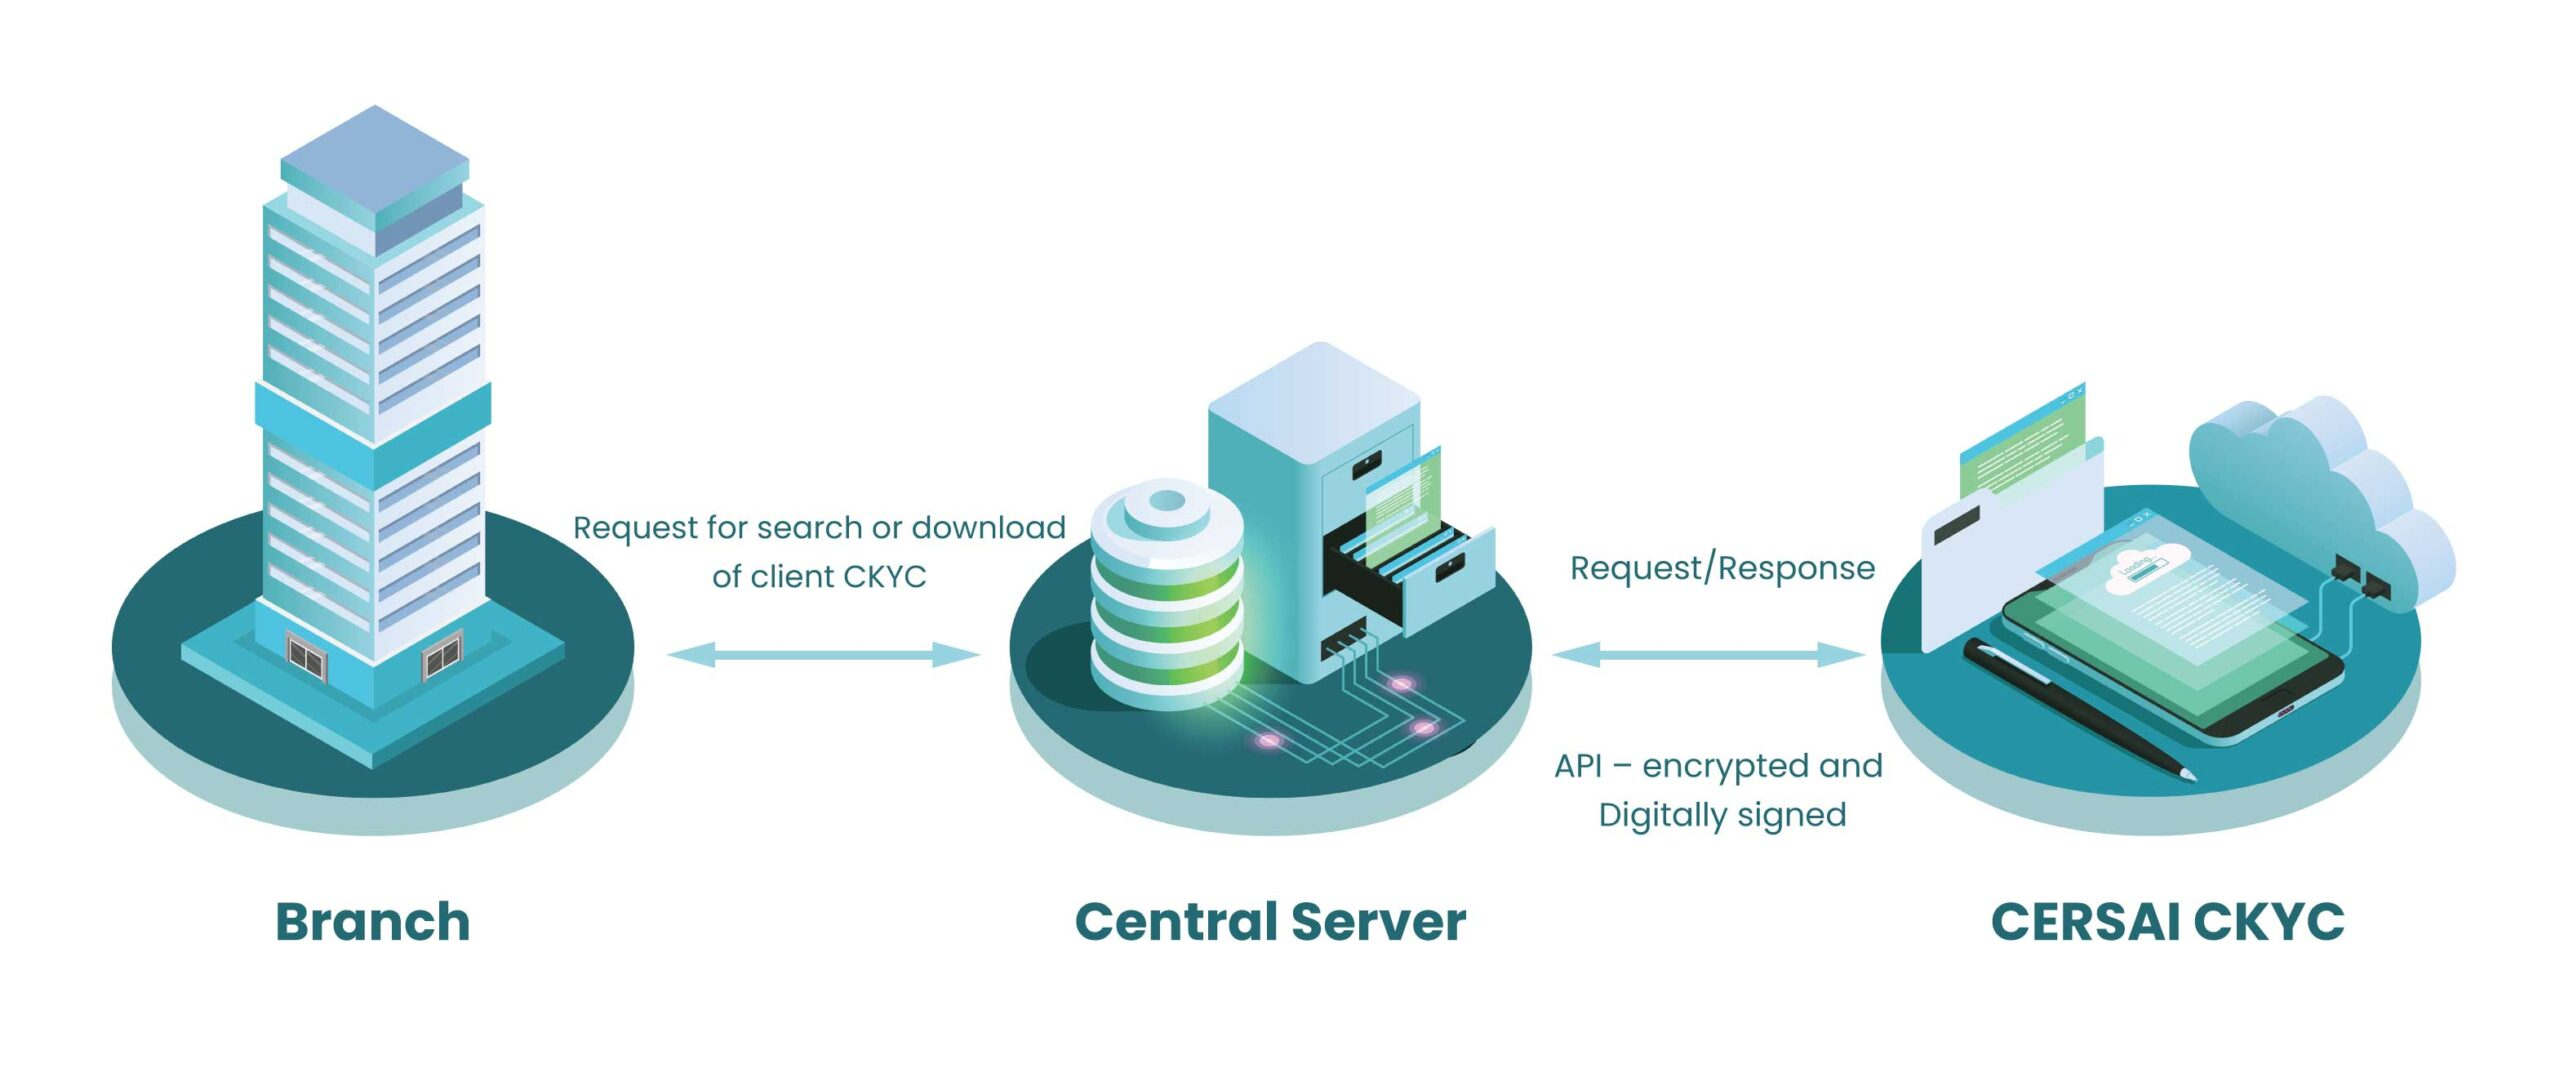 CERSAI CKYCR Integration Application Software for Banks and Financial Institutes